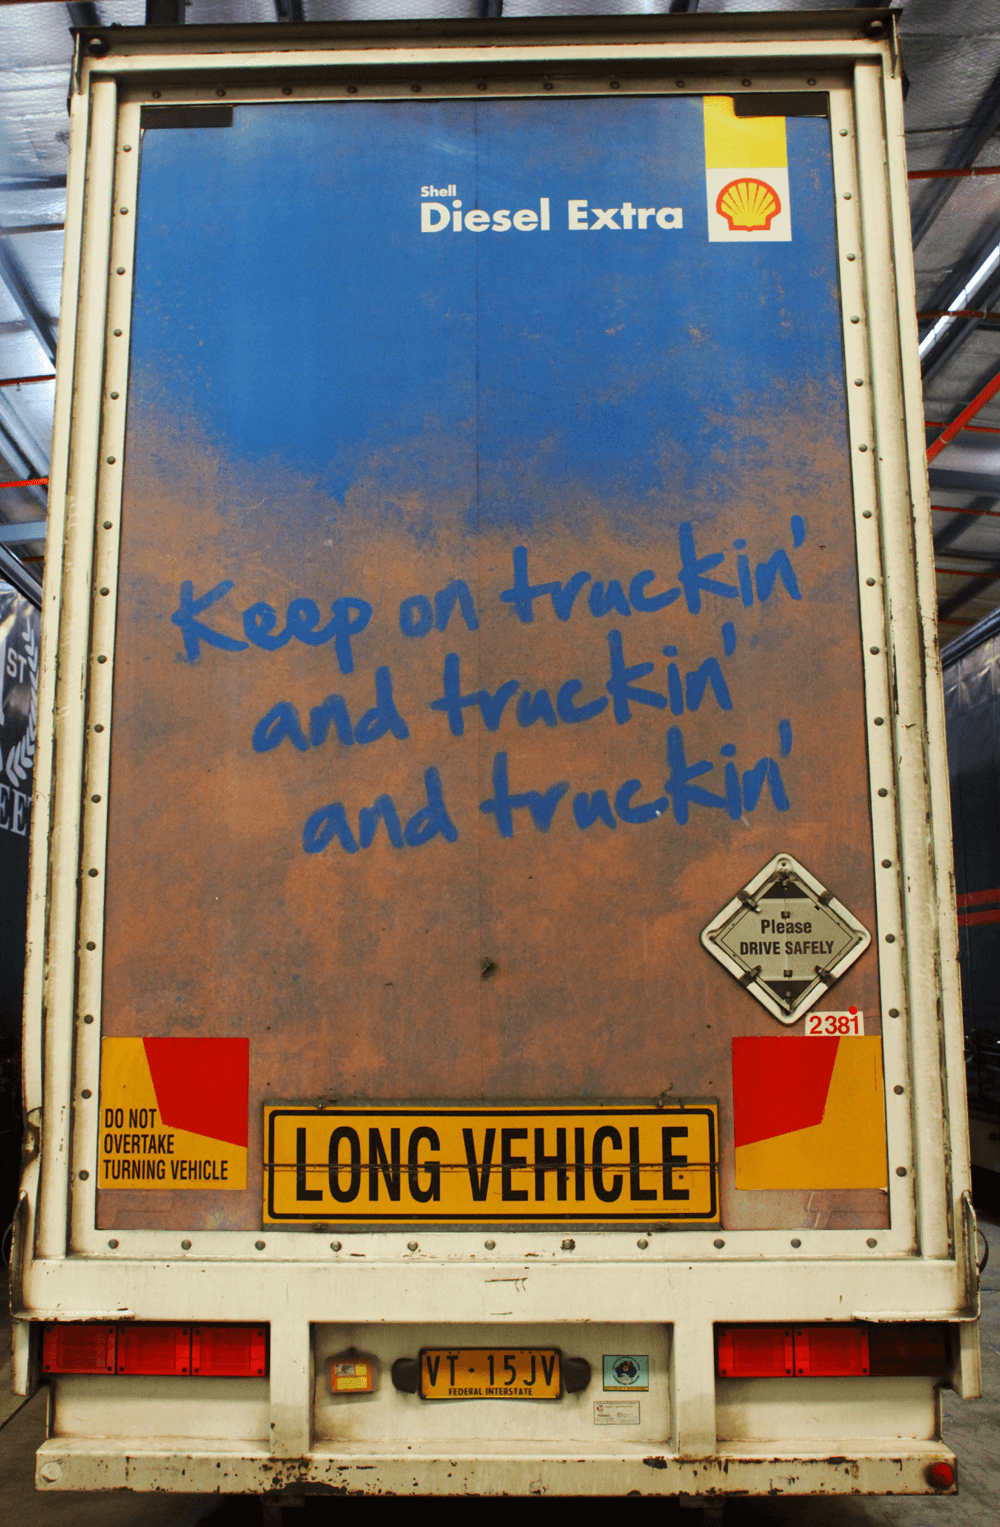 Truck advertising. Shell Diesel Extra custom TruckBack on First Fleet B Double with Long Vehicle sign.